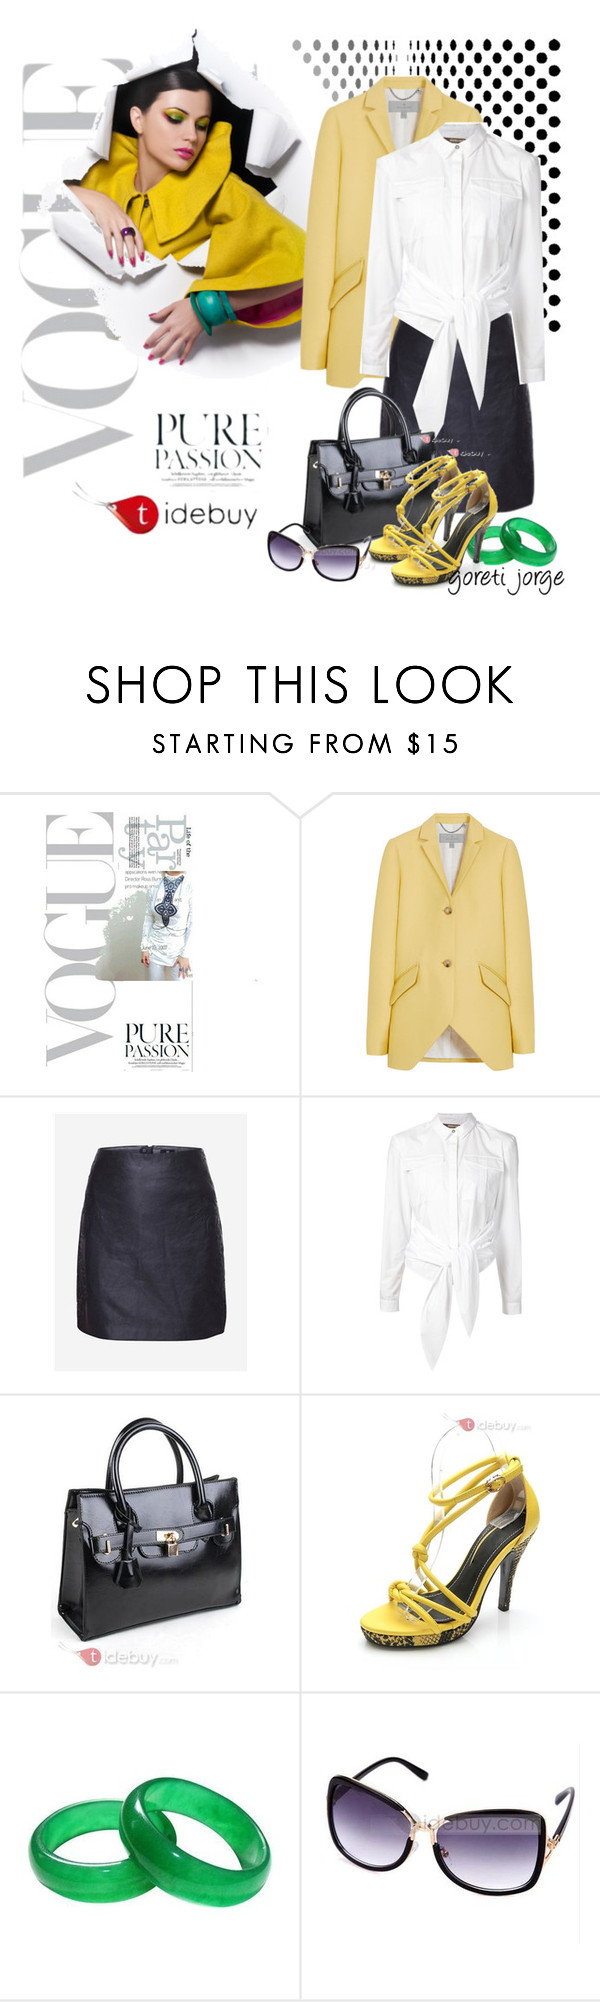 """""""www.tidebuy.com"""" by goreti ❤ liked on Polyvore featuring Mulberry, Roberto Cavalli and tidebuy"""